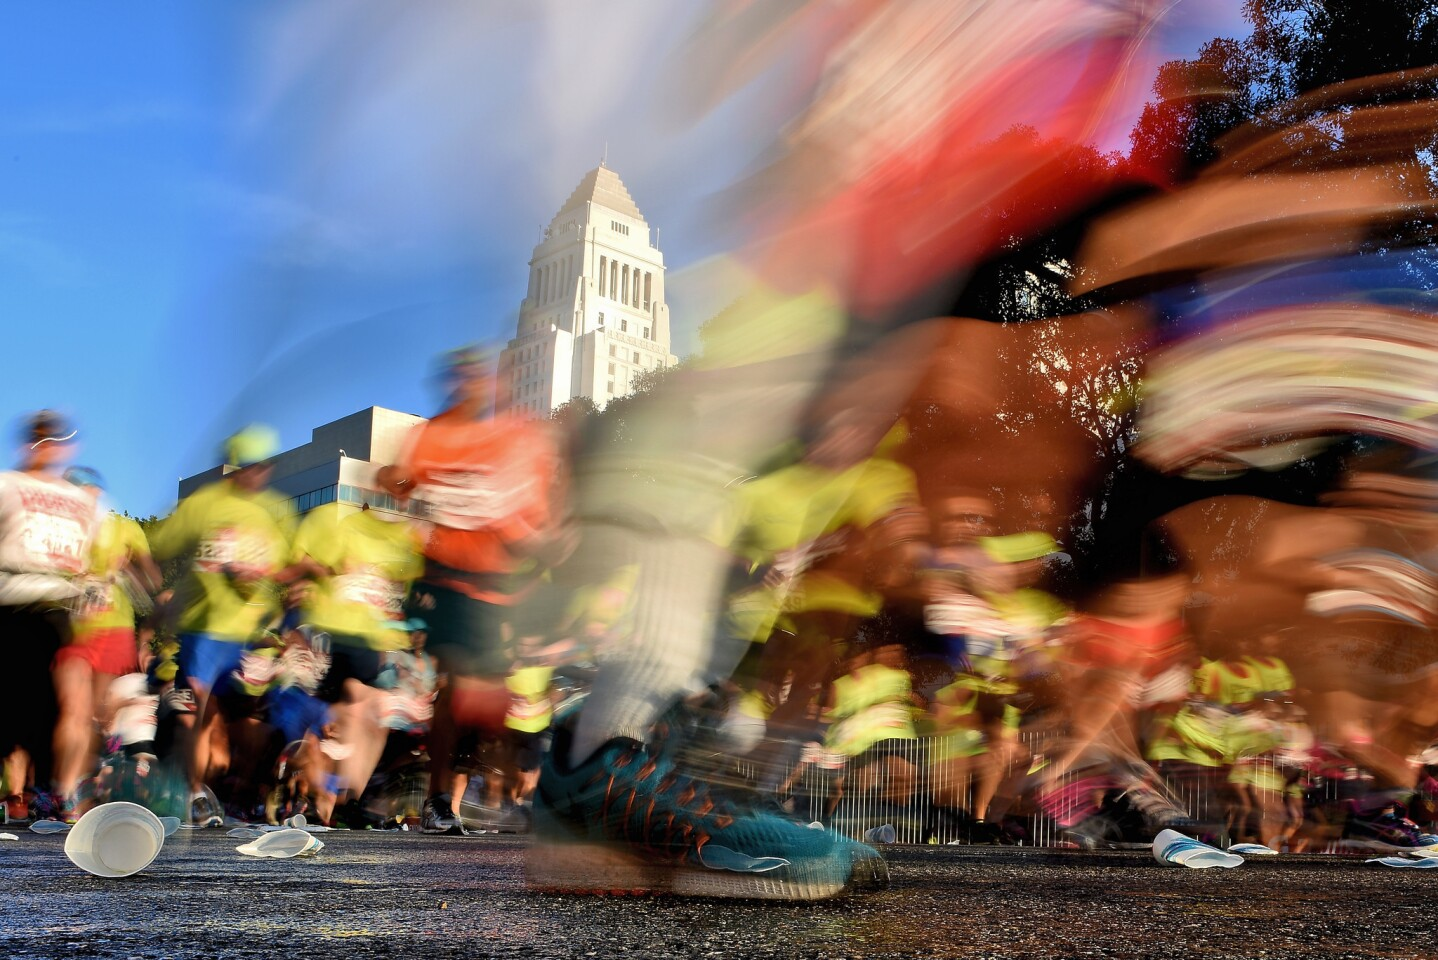 LOS ANGELES, CA - FEBRUARY 14: Participants run near Los Angeles City Hall during the 2016 Skechers Performance Los Angeles Marathon on February 14, 2016 in Los Angeles, California. (Photo by Jonathan Moore/Getty Images) ** OUTS - ELSENT, FPG, CM - OUTS * NM, PH, VA if sourced by CT, LA or MoD **